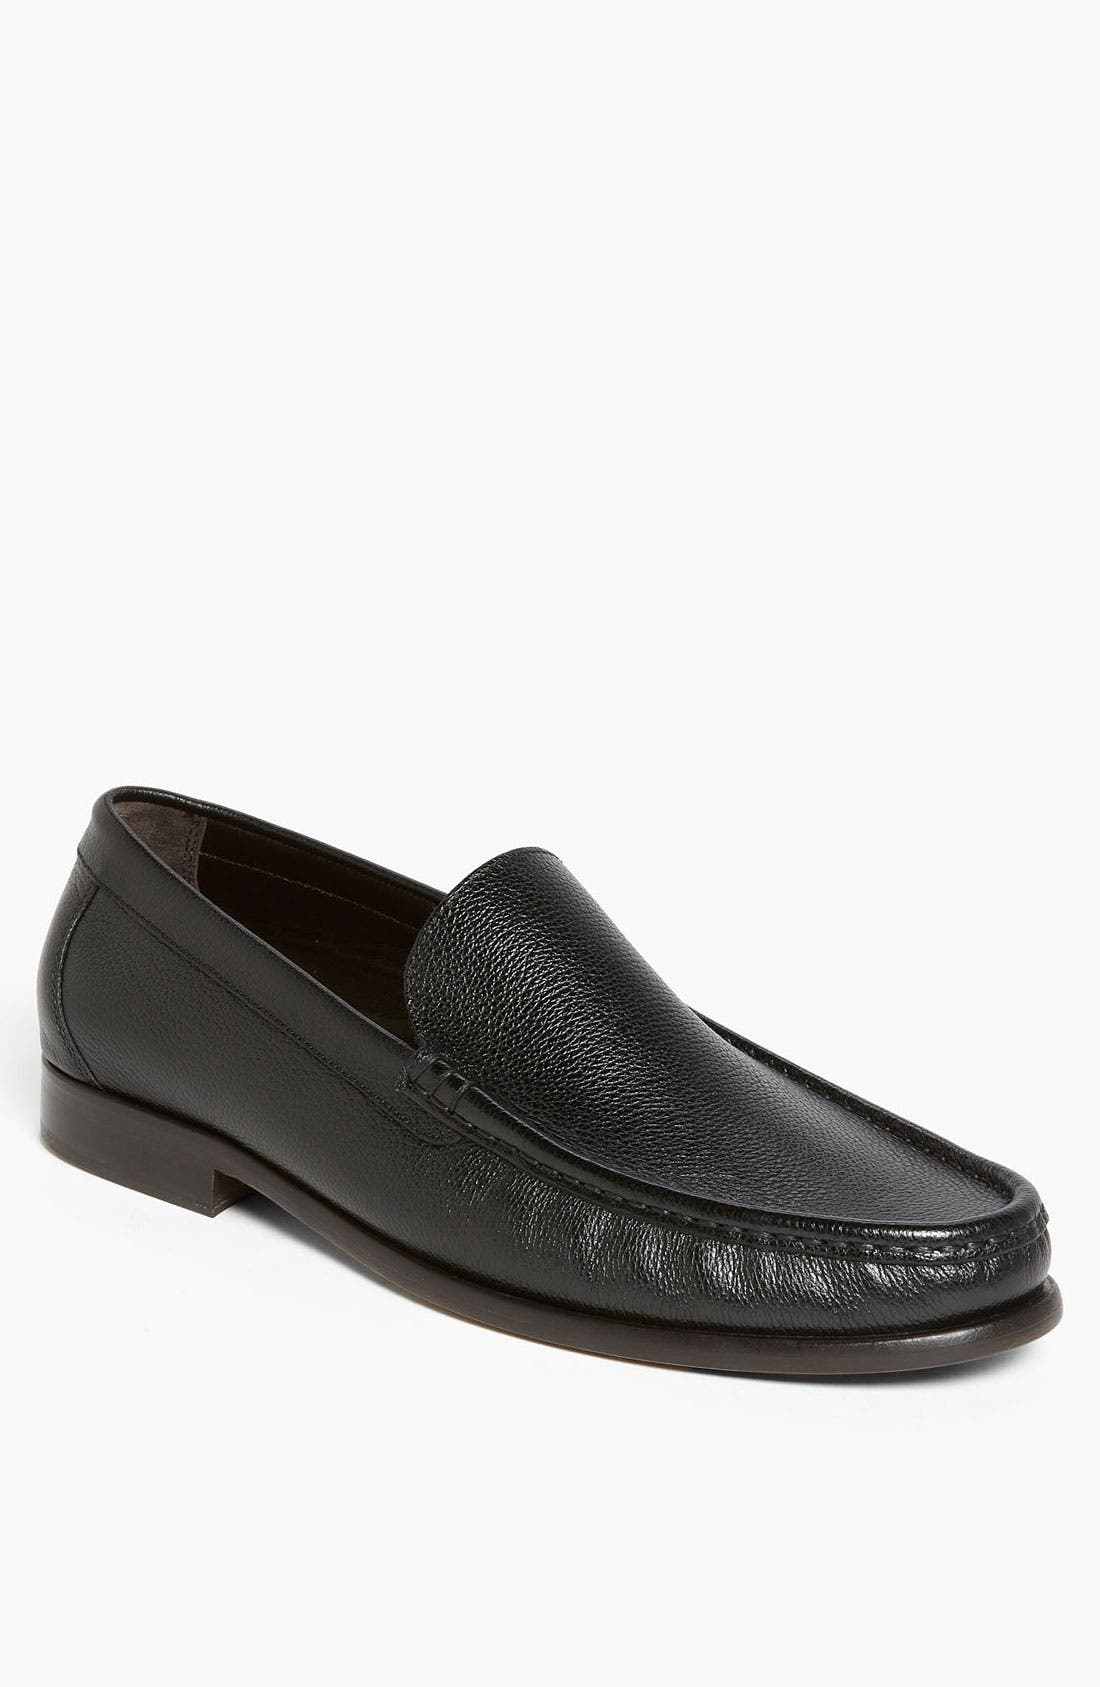 Main Image - Bruno Magli 'Evasio' Loafer